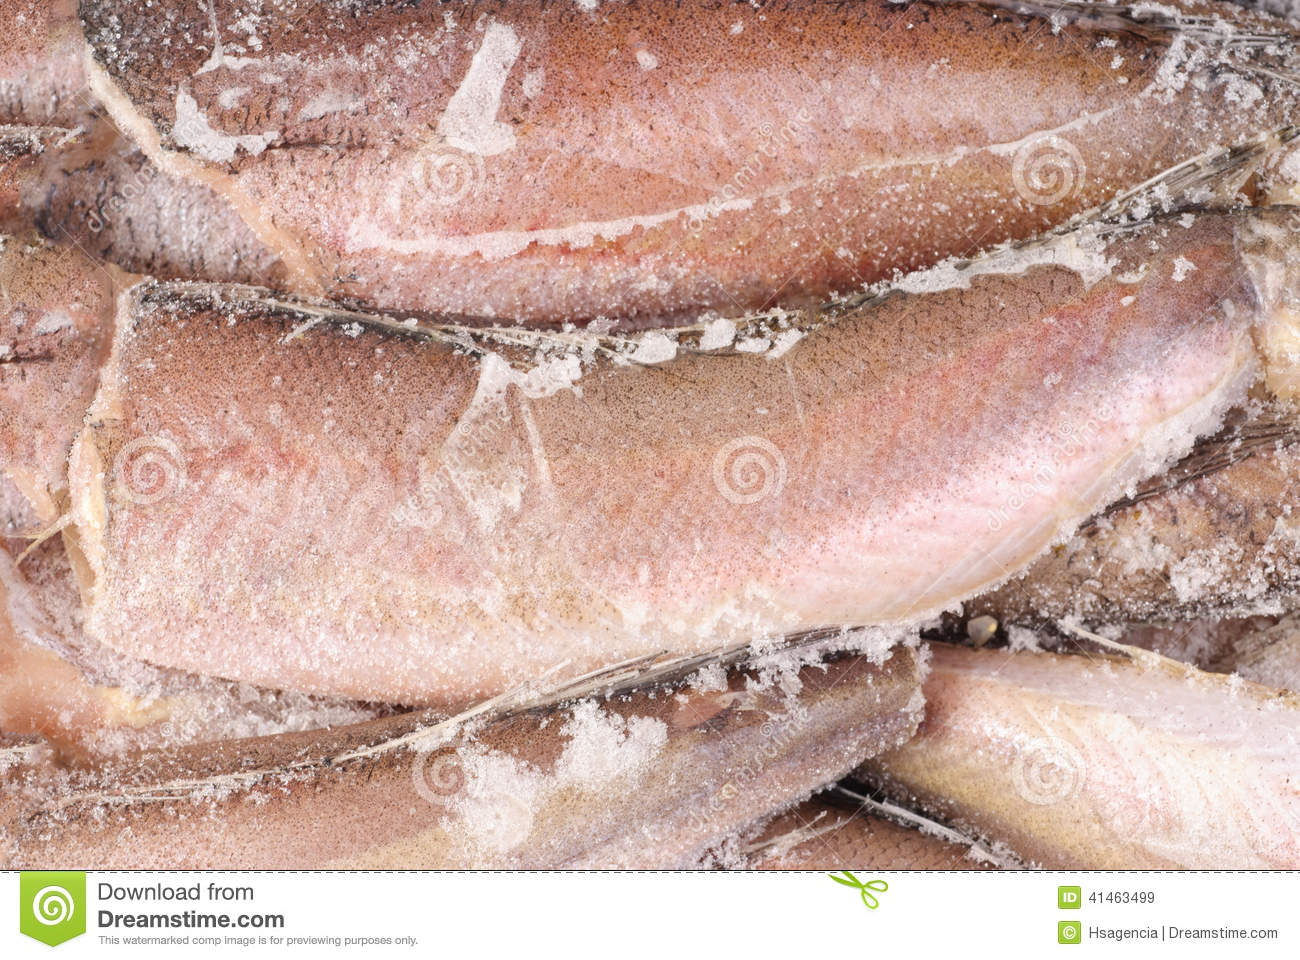 Frozen hake fish as food background stock photo image for Frozen fish food